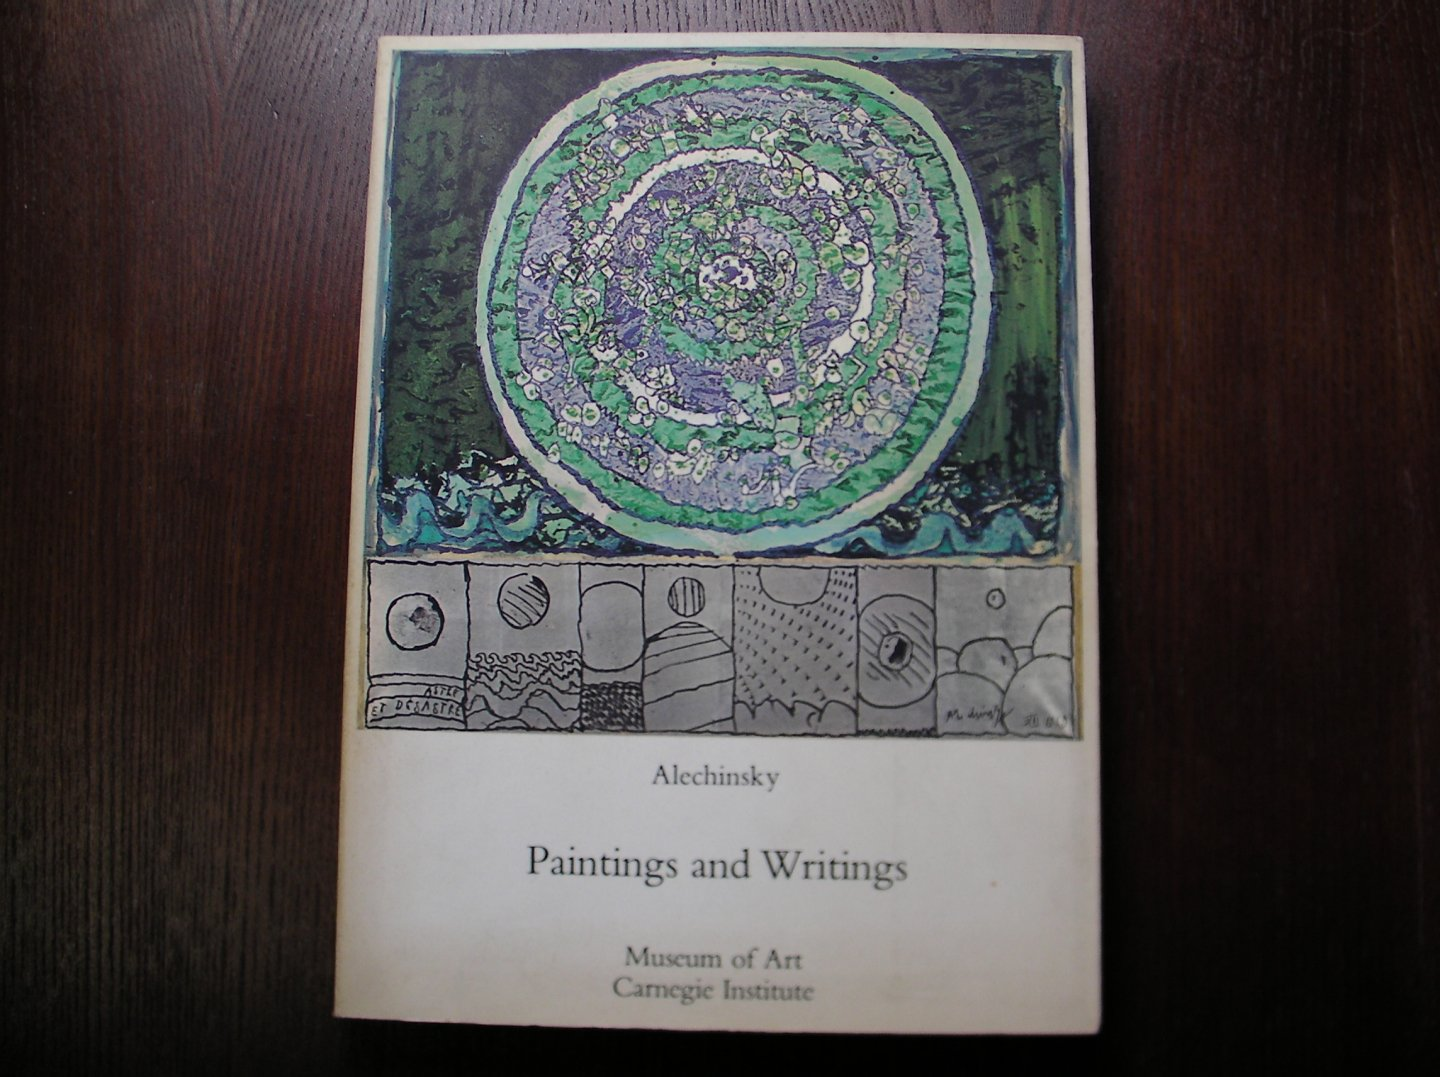 eugene ionesco - Paintings and writings